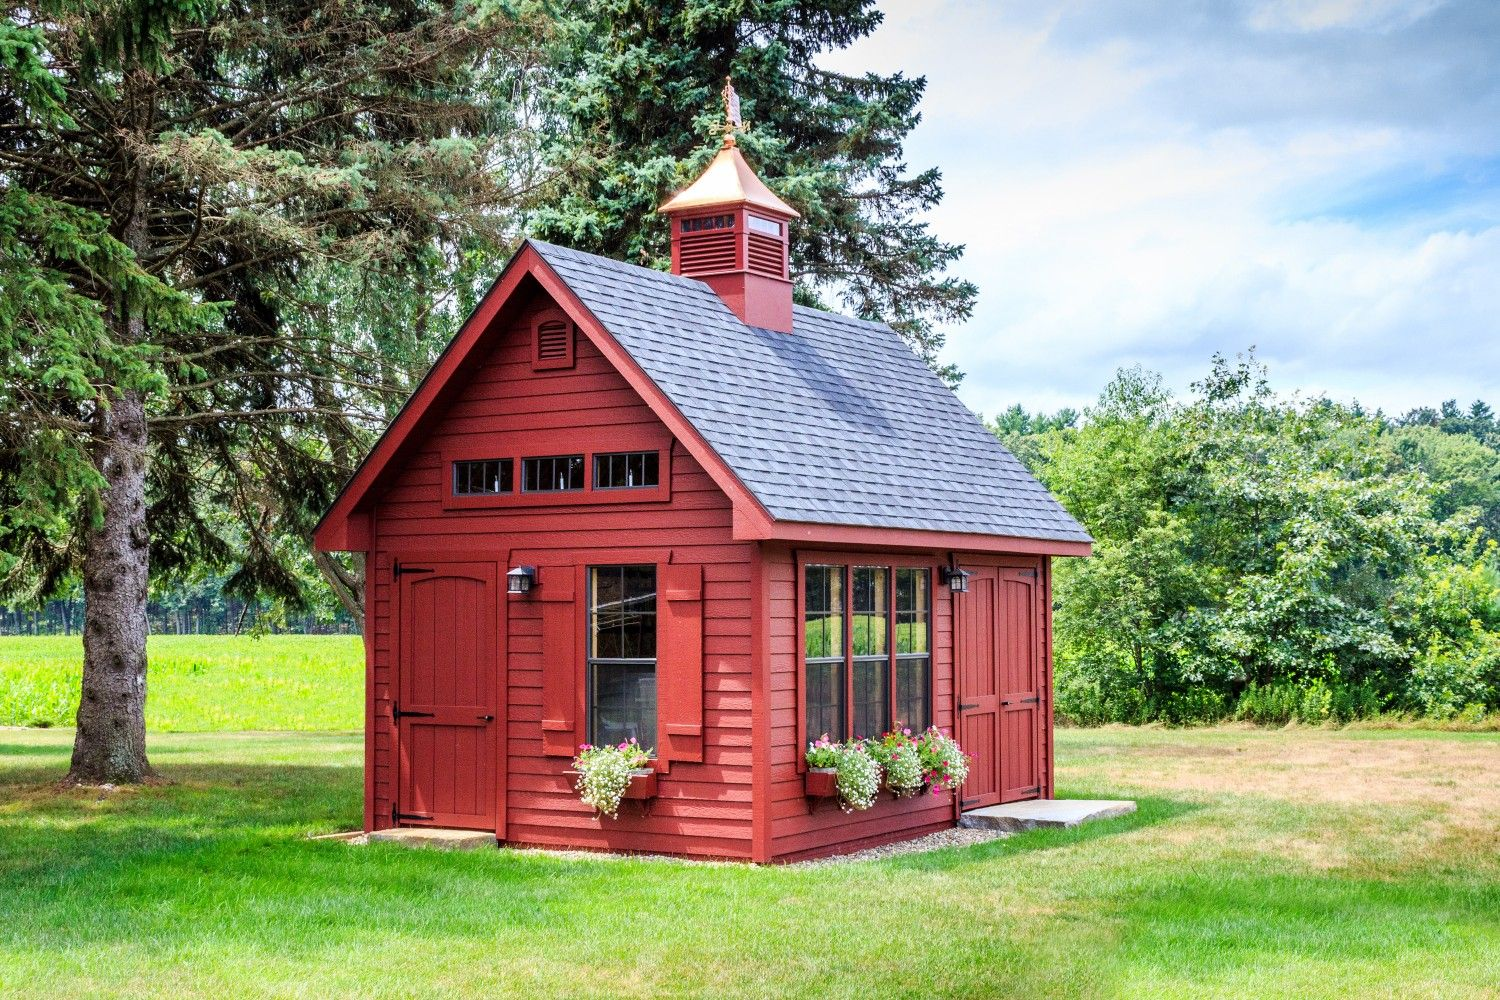 Grand Victorian: Sheds, Storage Buildings, Garages: The Barn Yard & Great  Country Garages | Building a shed, Shed building plans, Built in storage